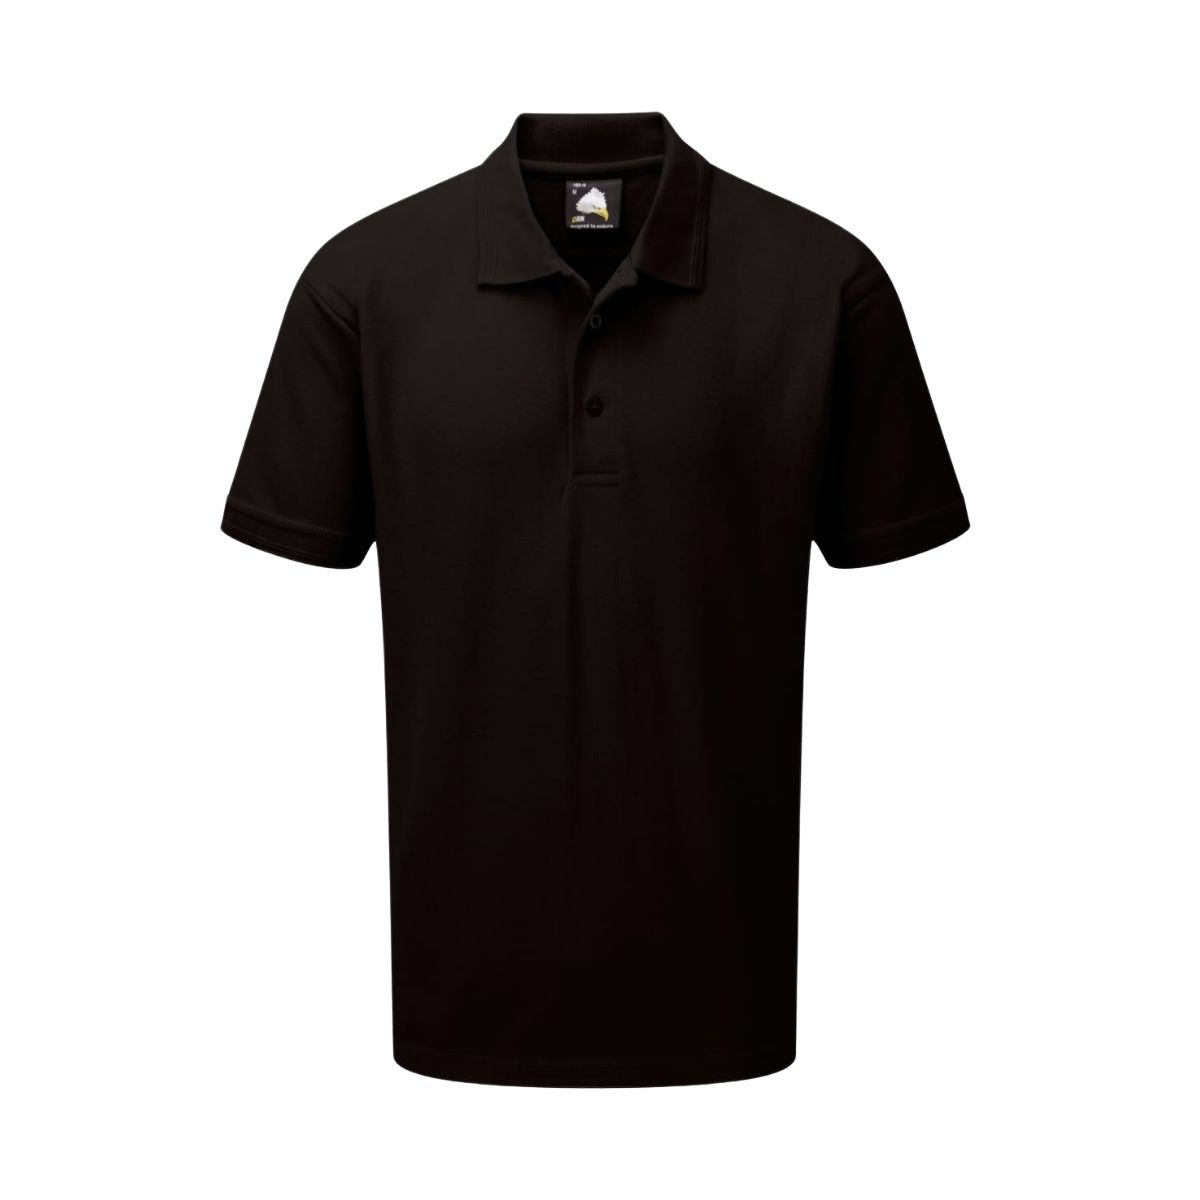 SH1190 Oriole Polyester Wicking Fabric Poloshirt 200 gsm